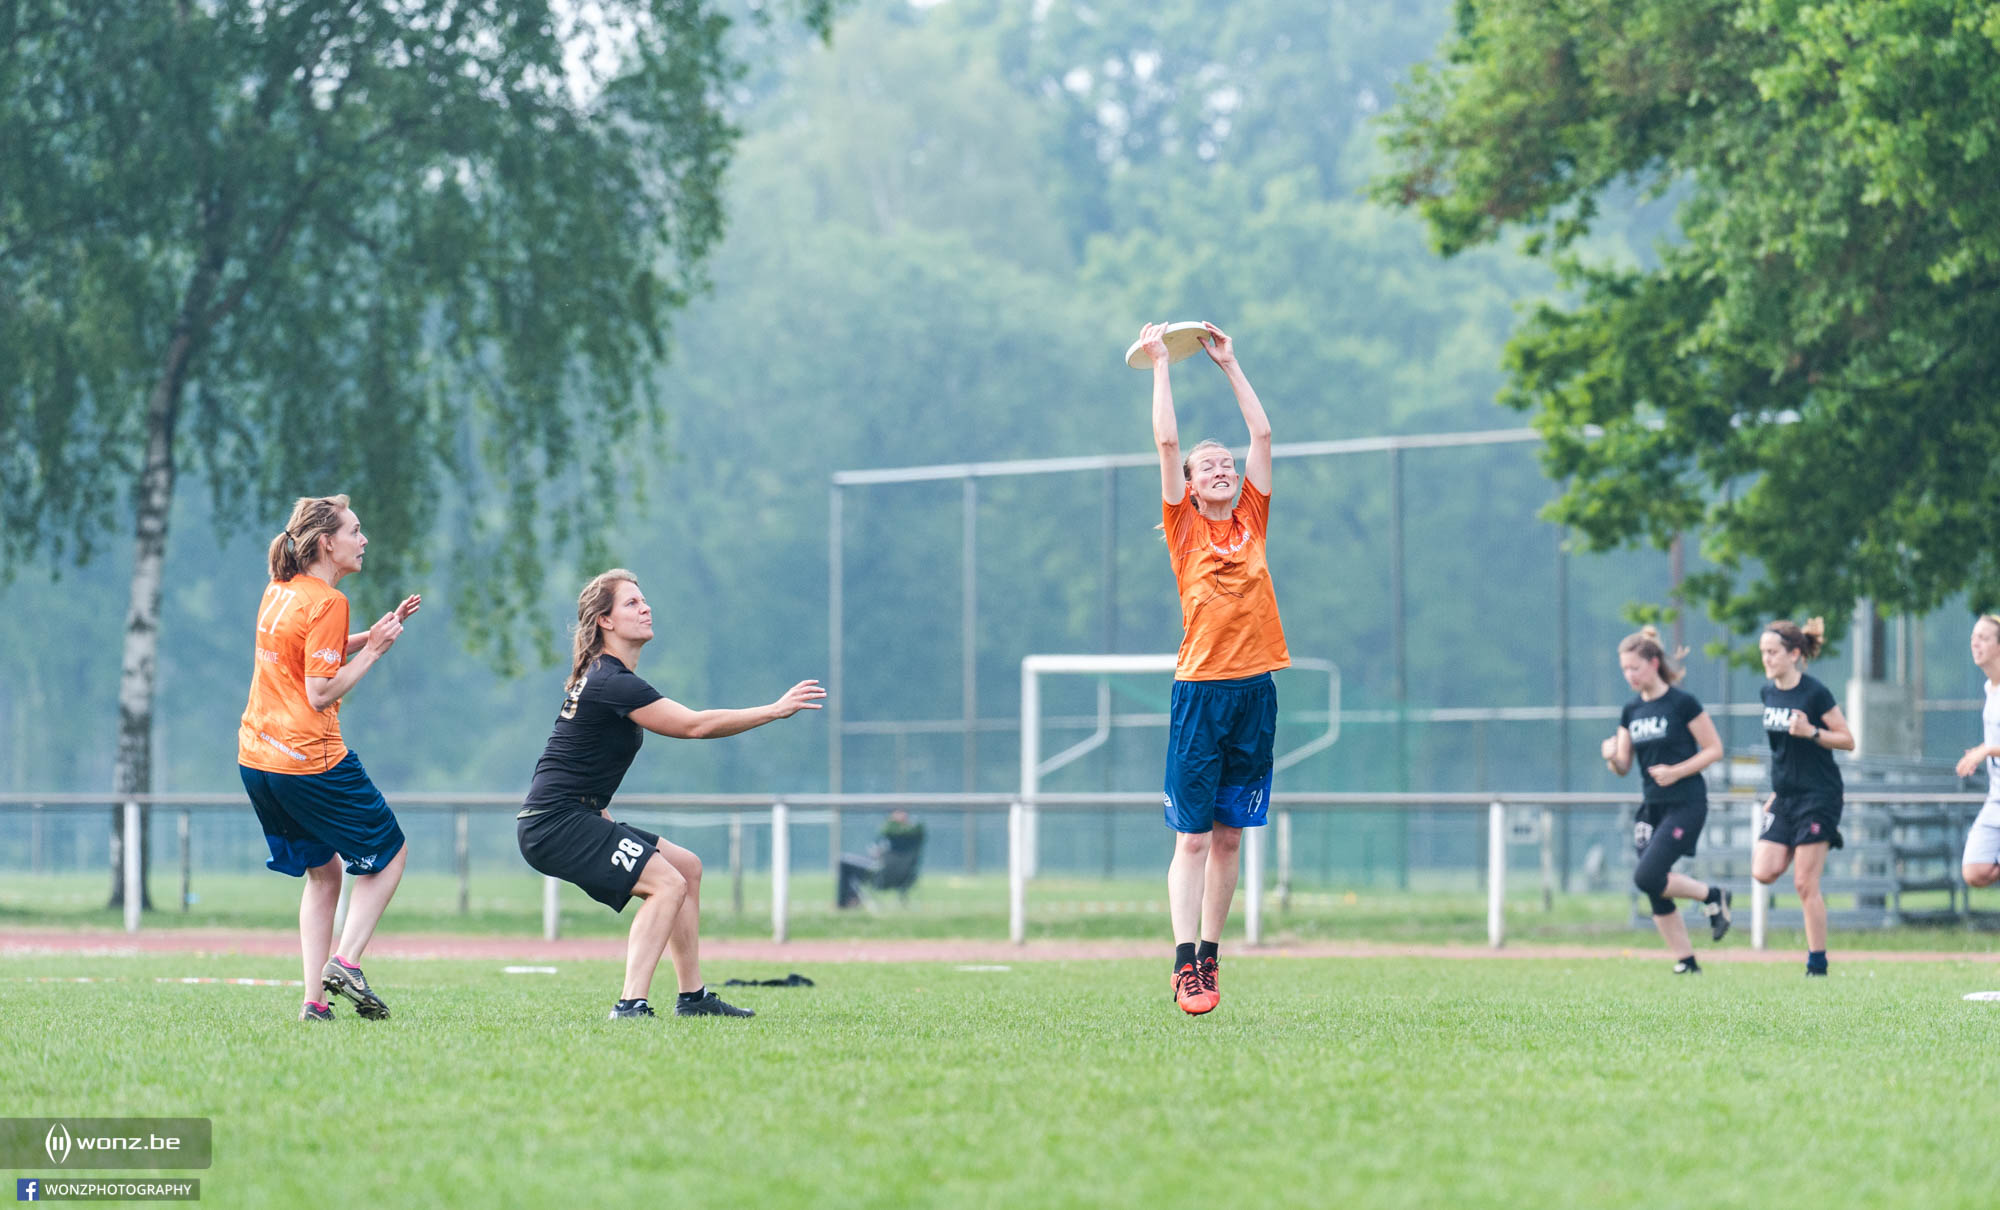 Belgian Ultimate Outdoor Championships (Open and Woman) by wonz.be